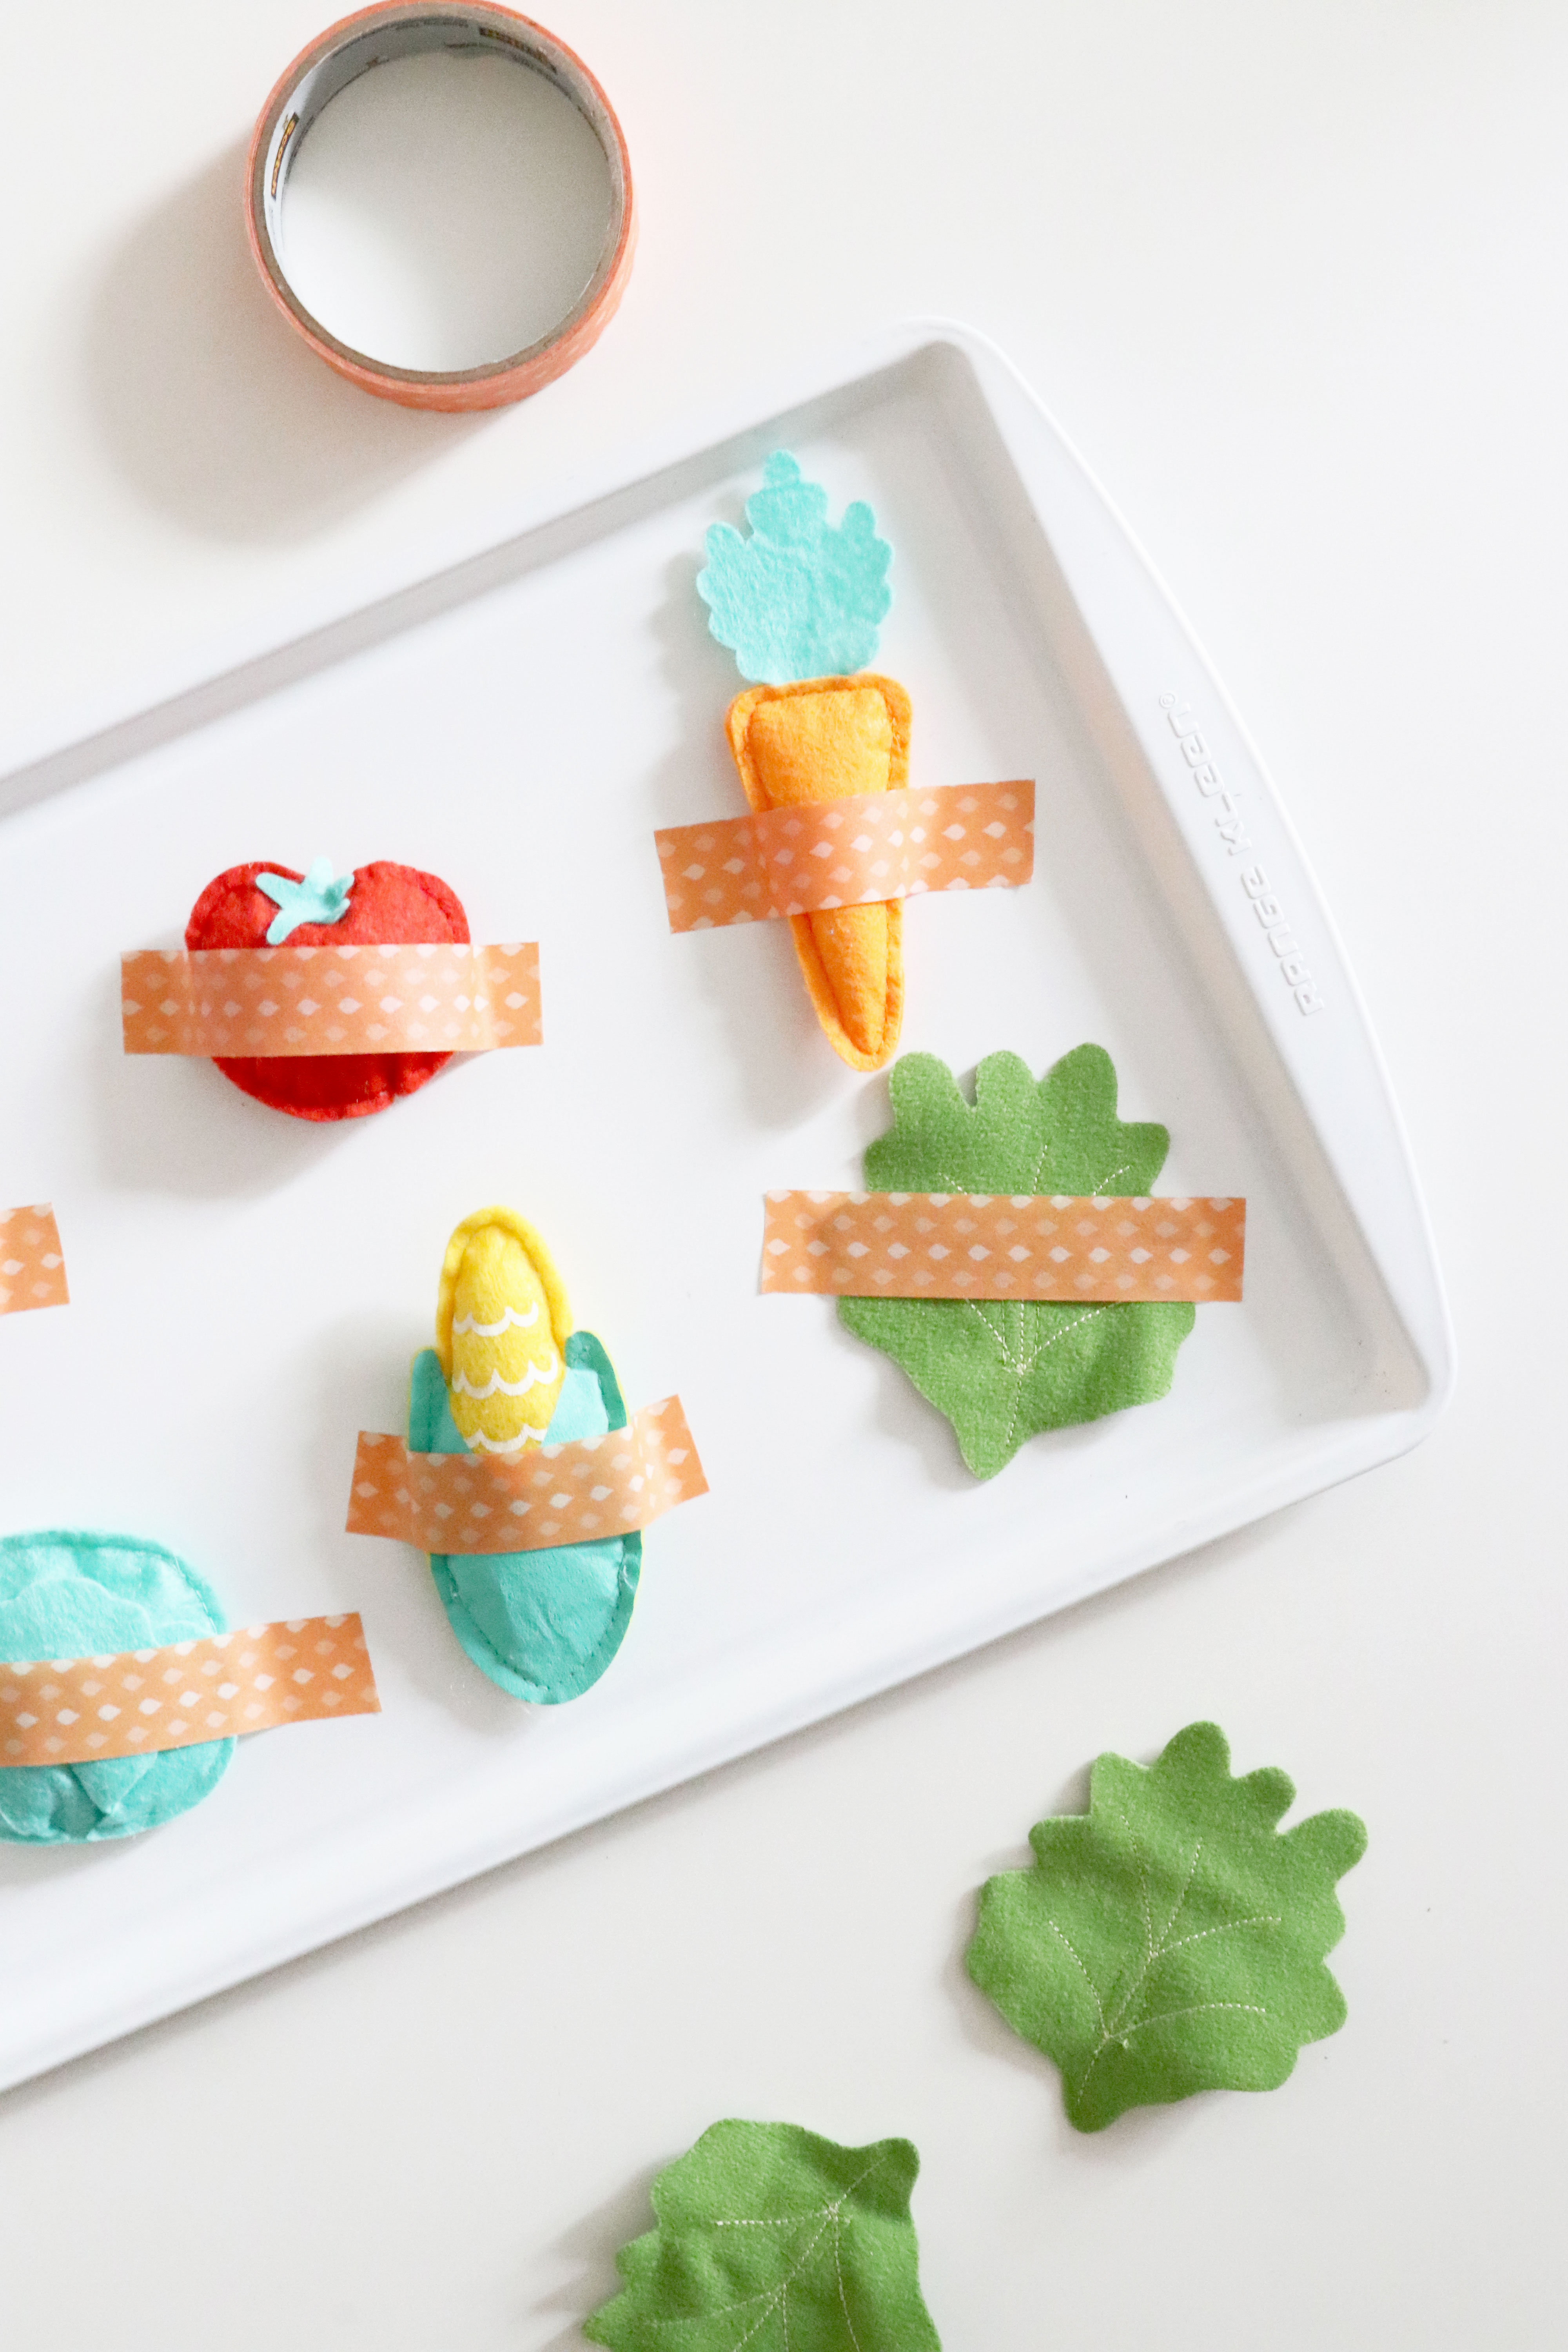 Plush Toy Vegetables Taped Onto Baking Sheet For Toddler Activity. Toddlers can remove the tape and toys!